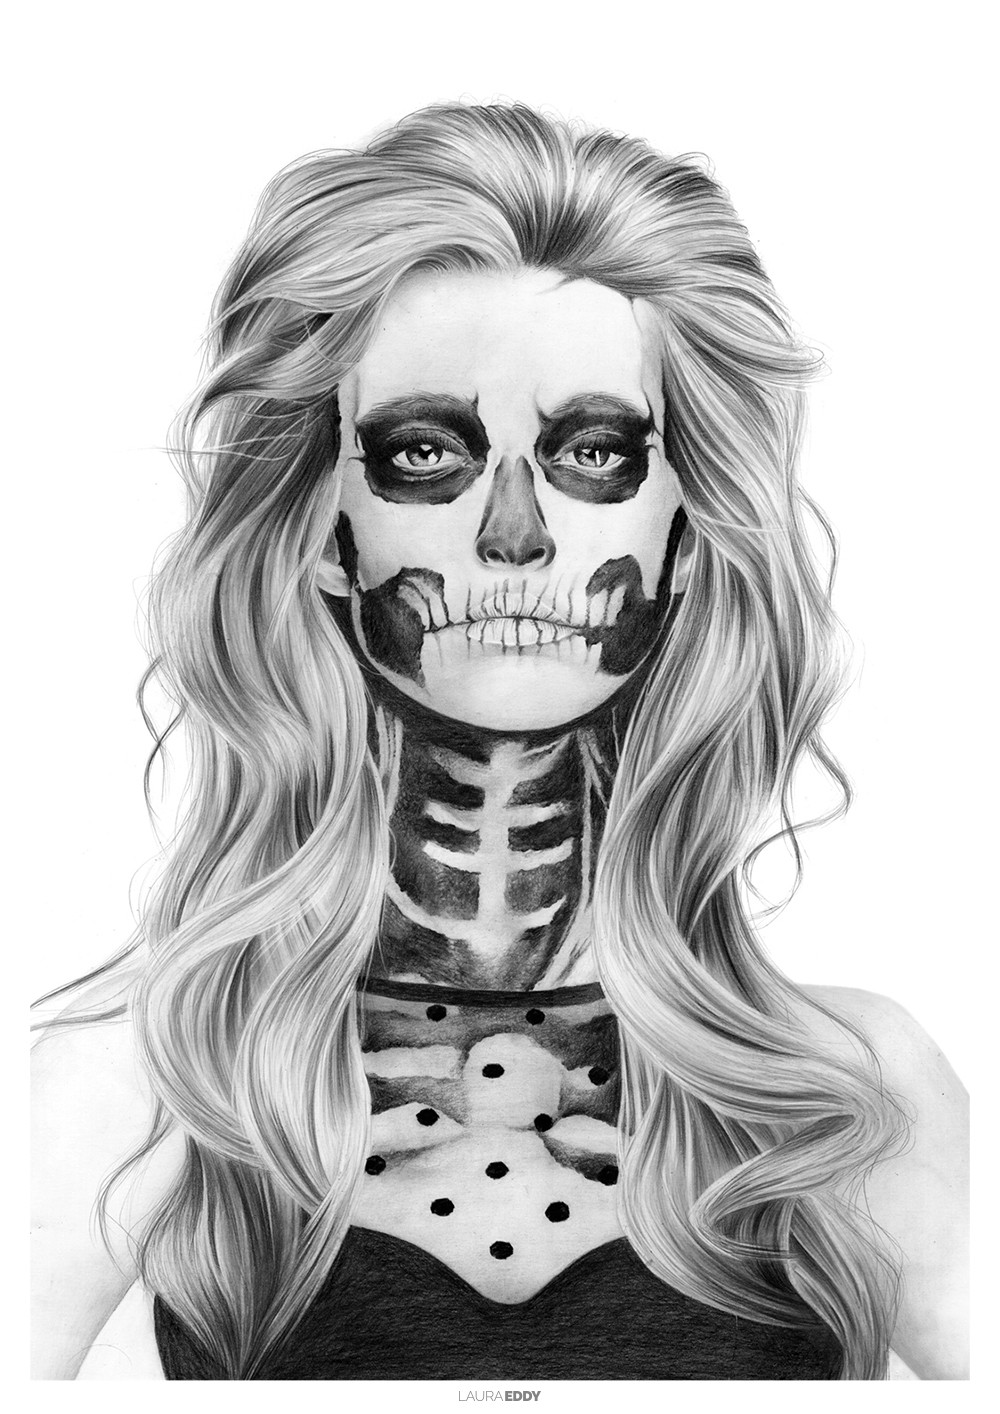 Skull Girl Pencil Drawing